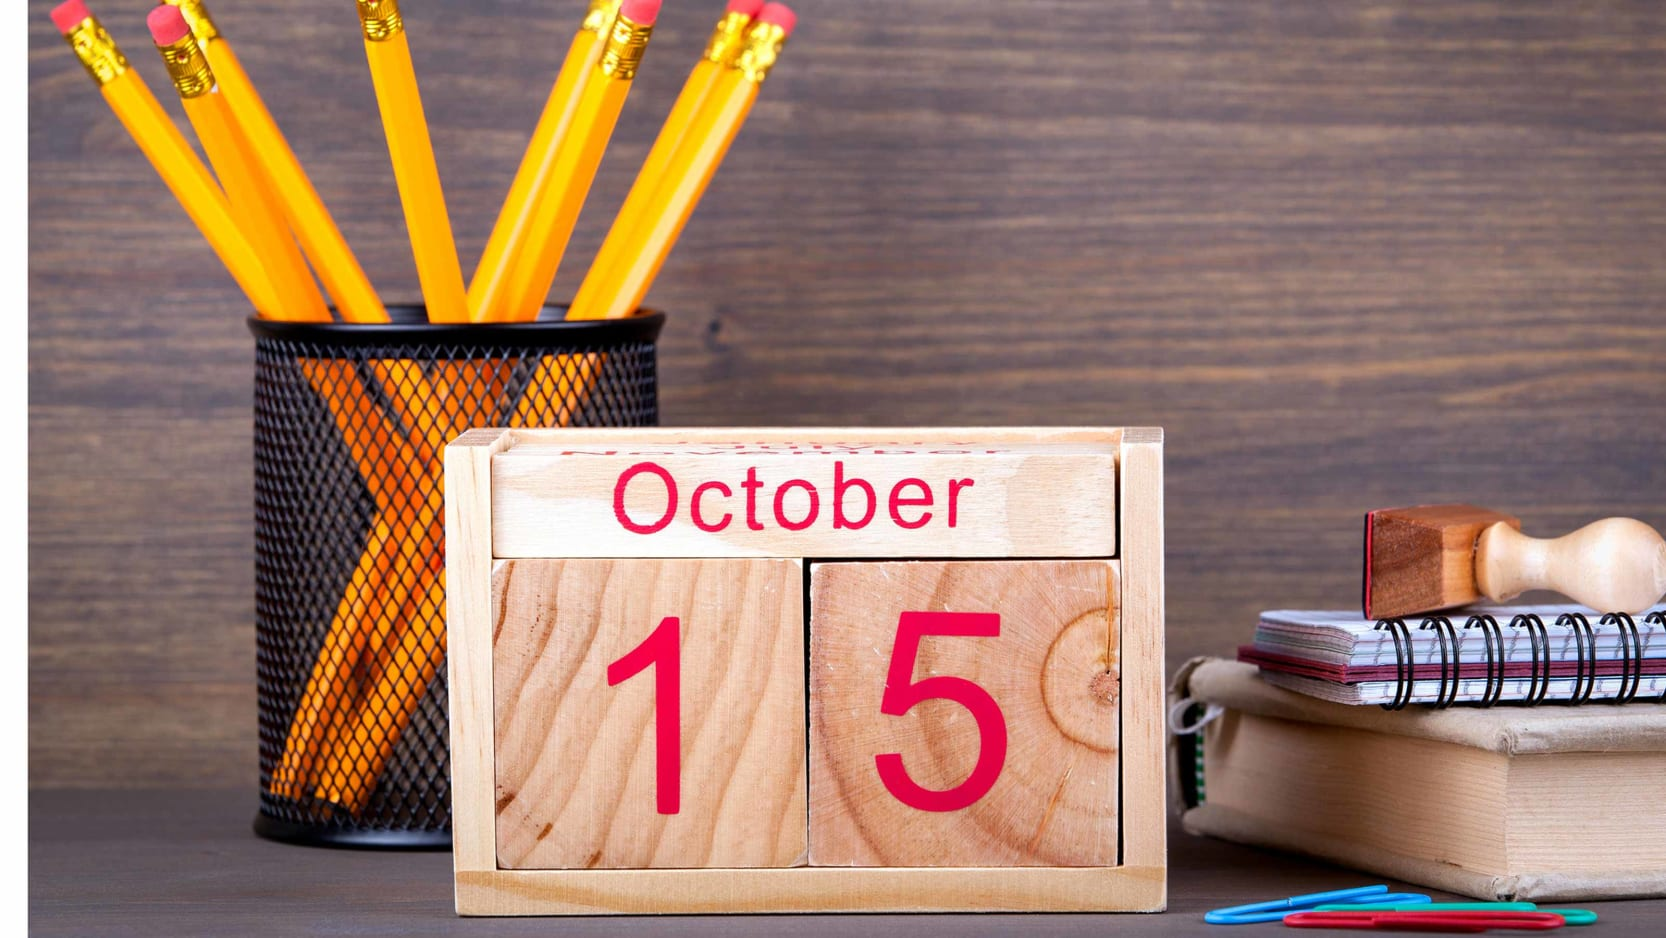 A desk calendar displaying October 15.